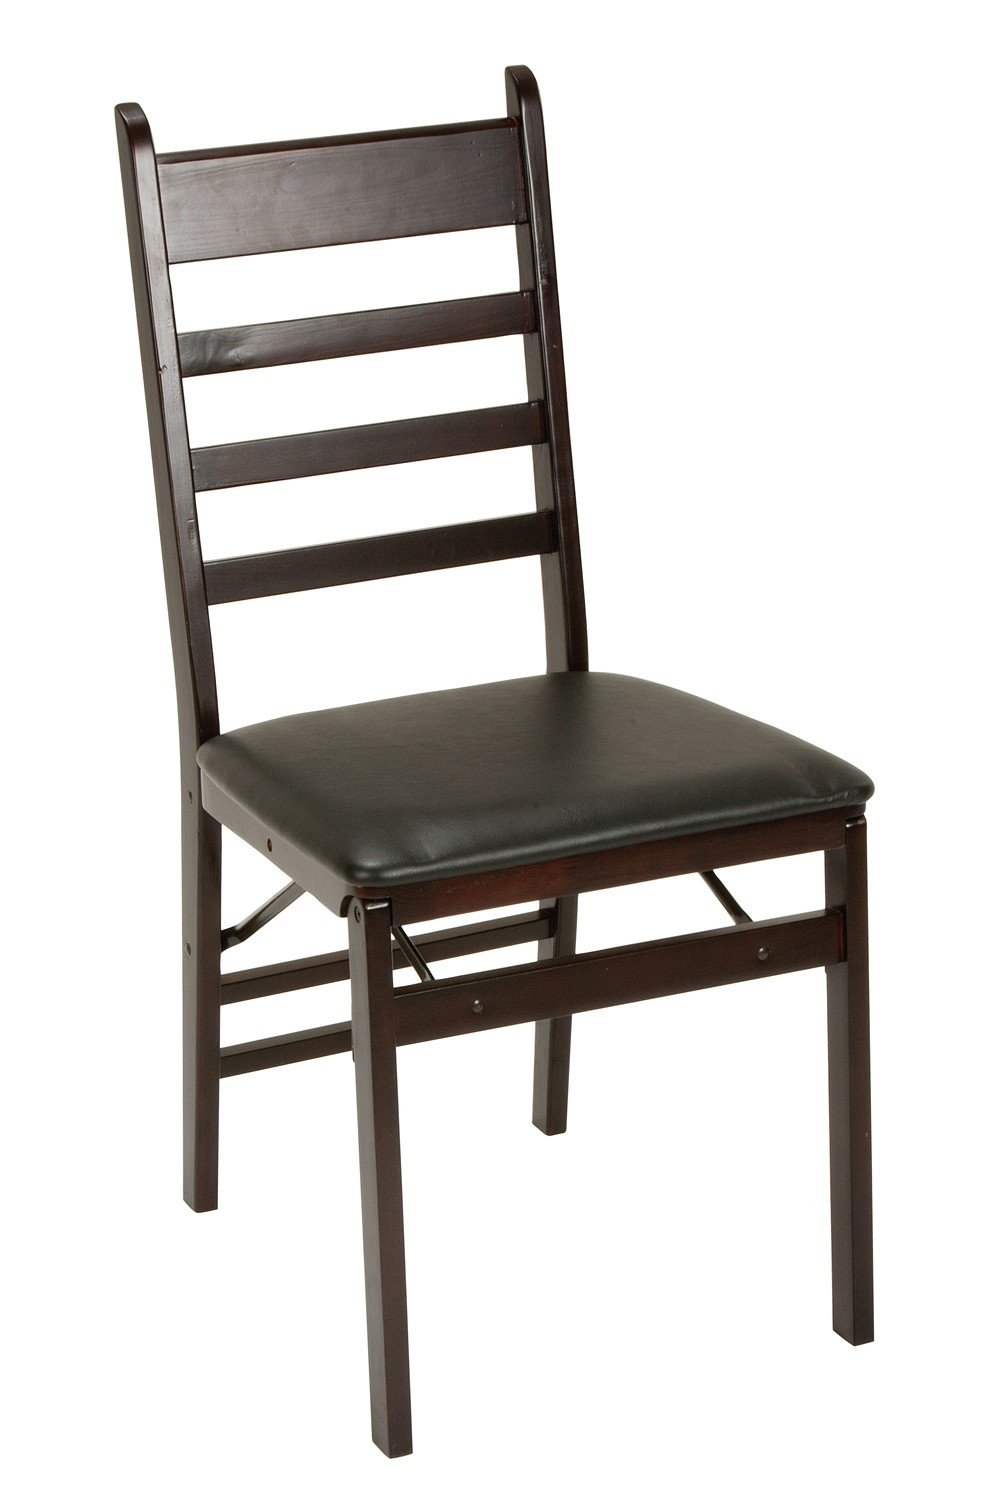 Elegant Amazon.com: Cosco 2 Pack Wood Folding Chair With Vinyl Seat And Ladder  Back, Espresso: Kitchen U0026 Dining